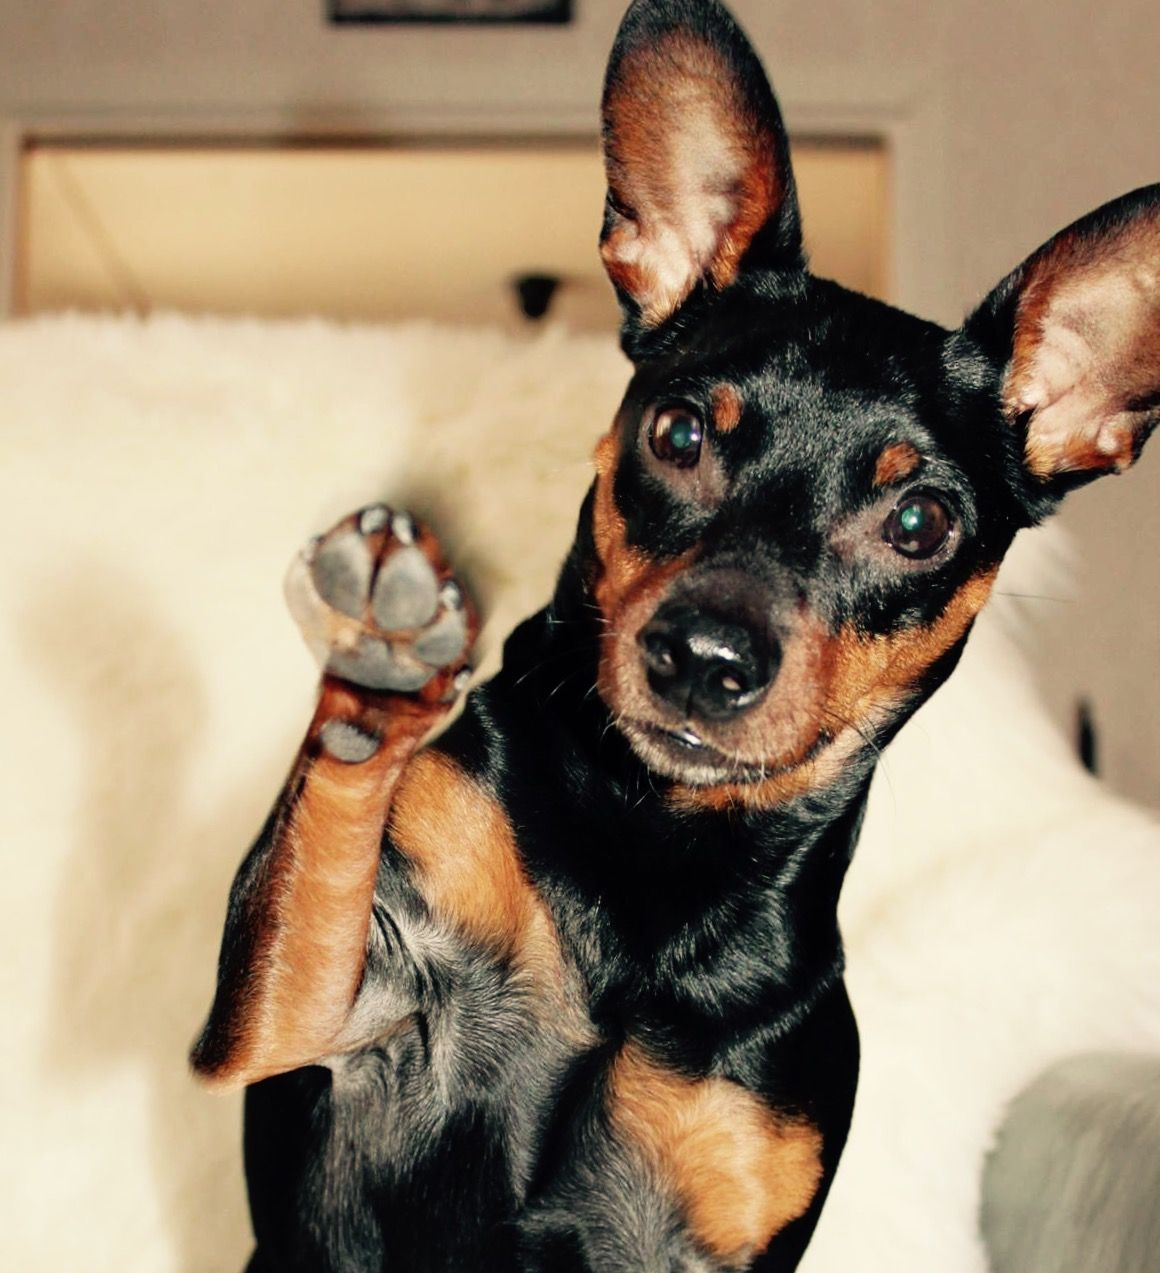 Who Wants To Play Miniature Pinscher Miniature Pinscher Puppy Miniature Pinscher Mini Pinscher